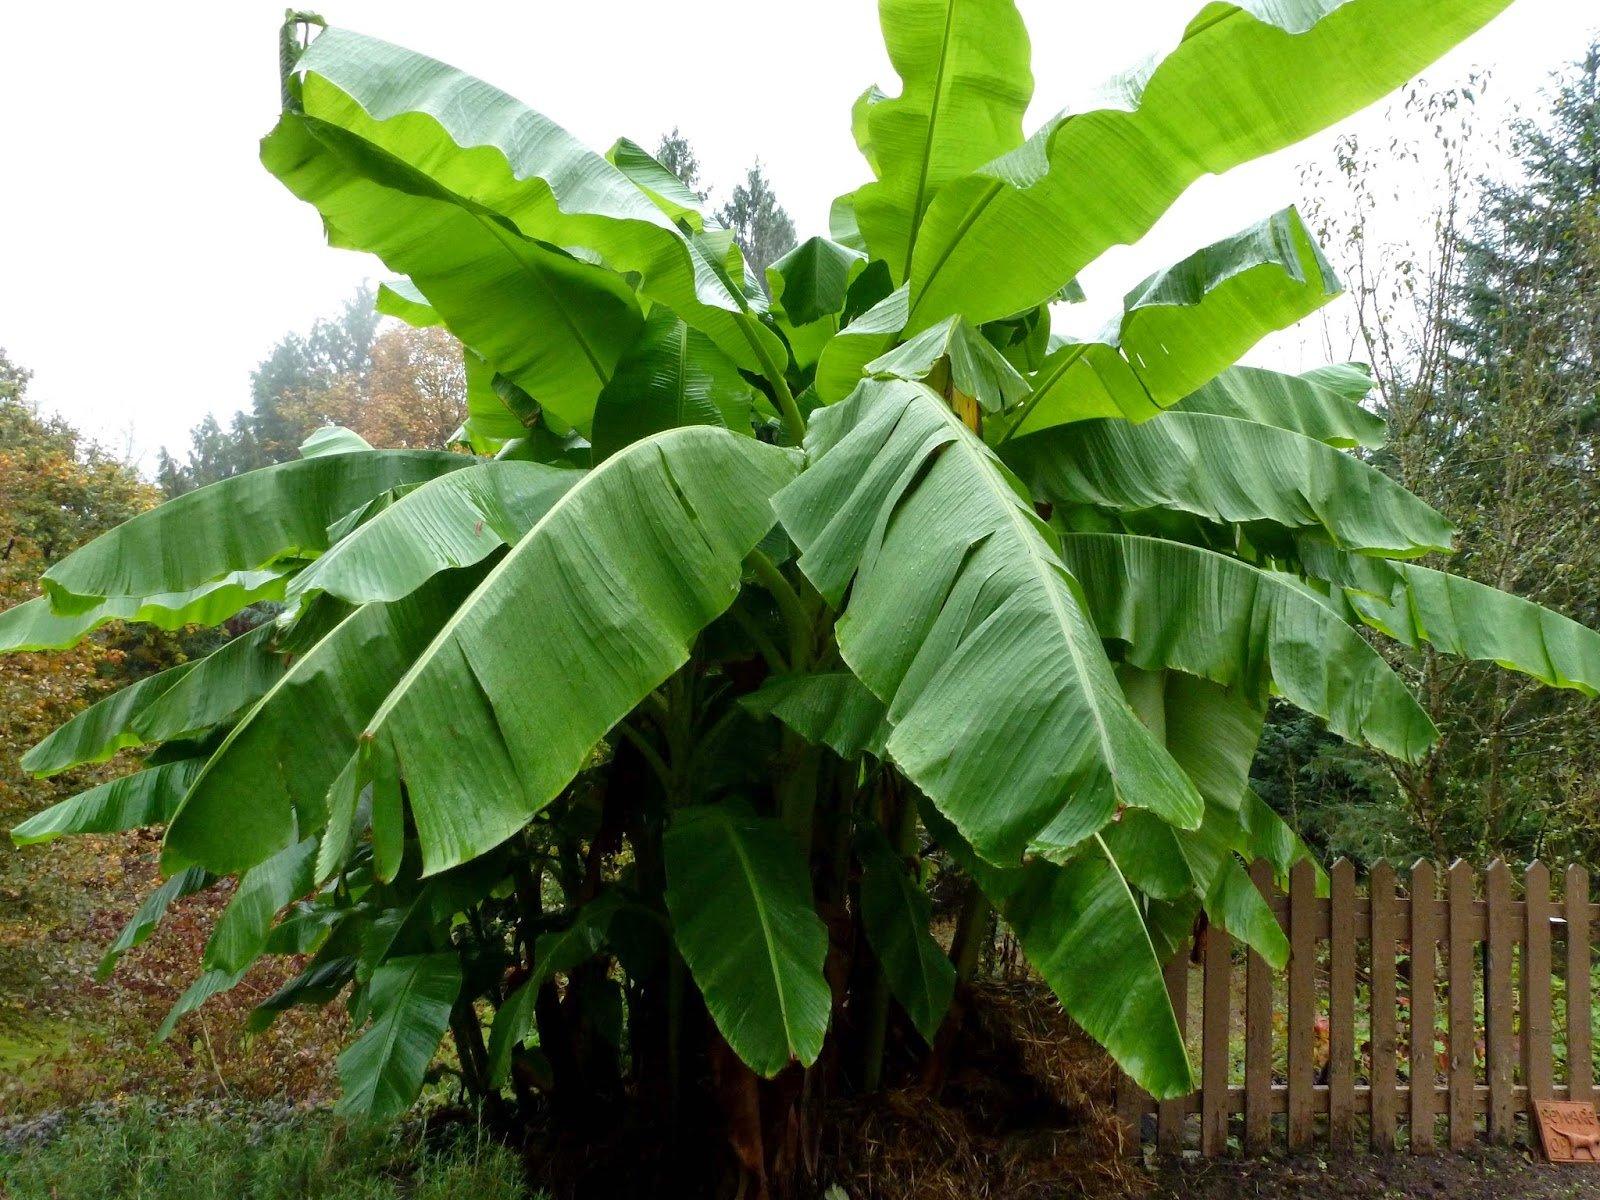 Banana tree pictures 1600x1200